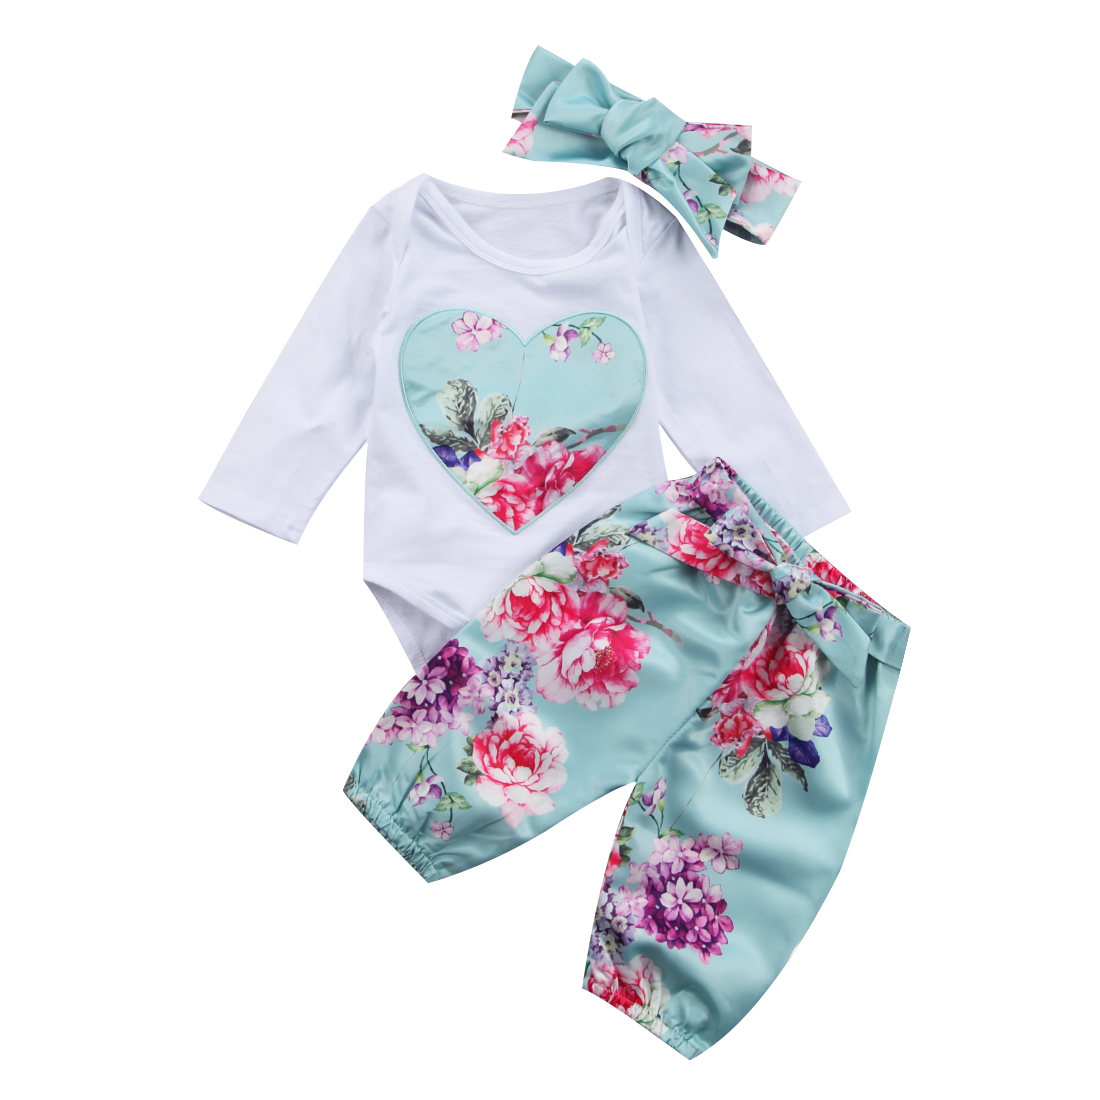 Baby Girls Clothing Sets Autumn Love heart Floral Newborn Baby Girls Clothes Long Sleeve Romper Jumpsuit Pants +headband Outfits baby girls butterfly long sleeve romper newborn kids 2017 new arrival button jumpsuit outfits clothing for newborns age 3m 3y